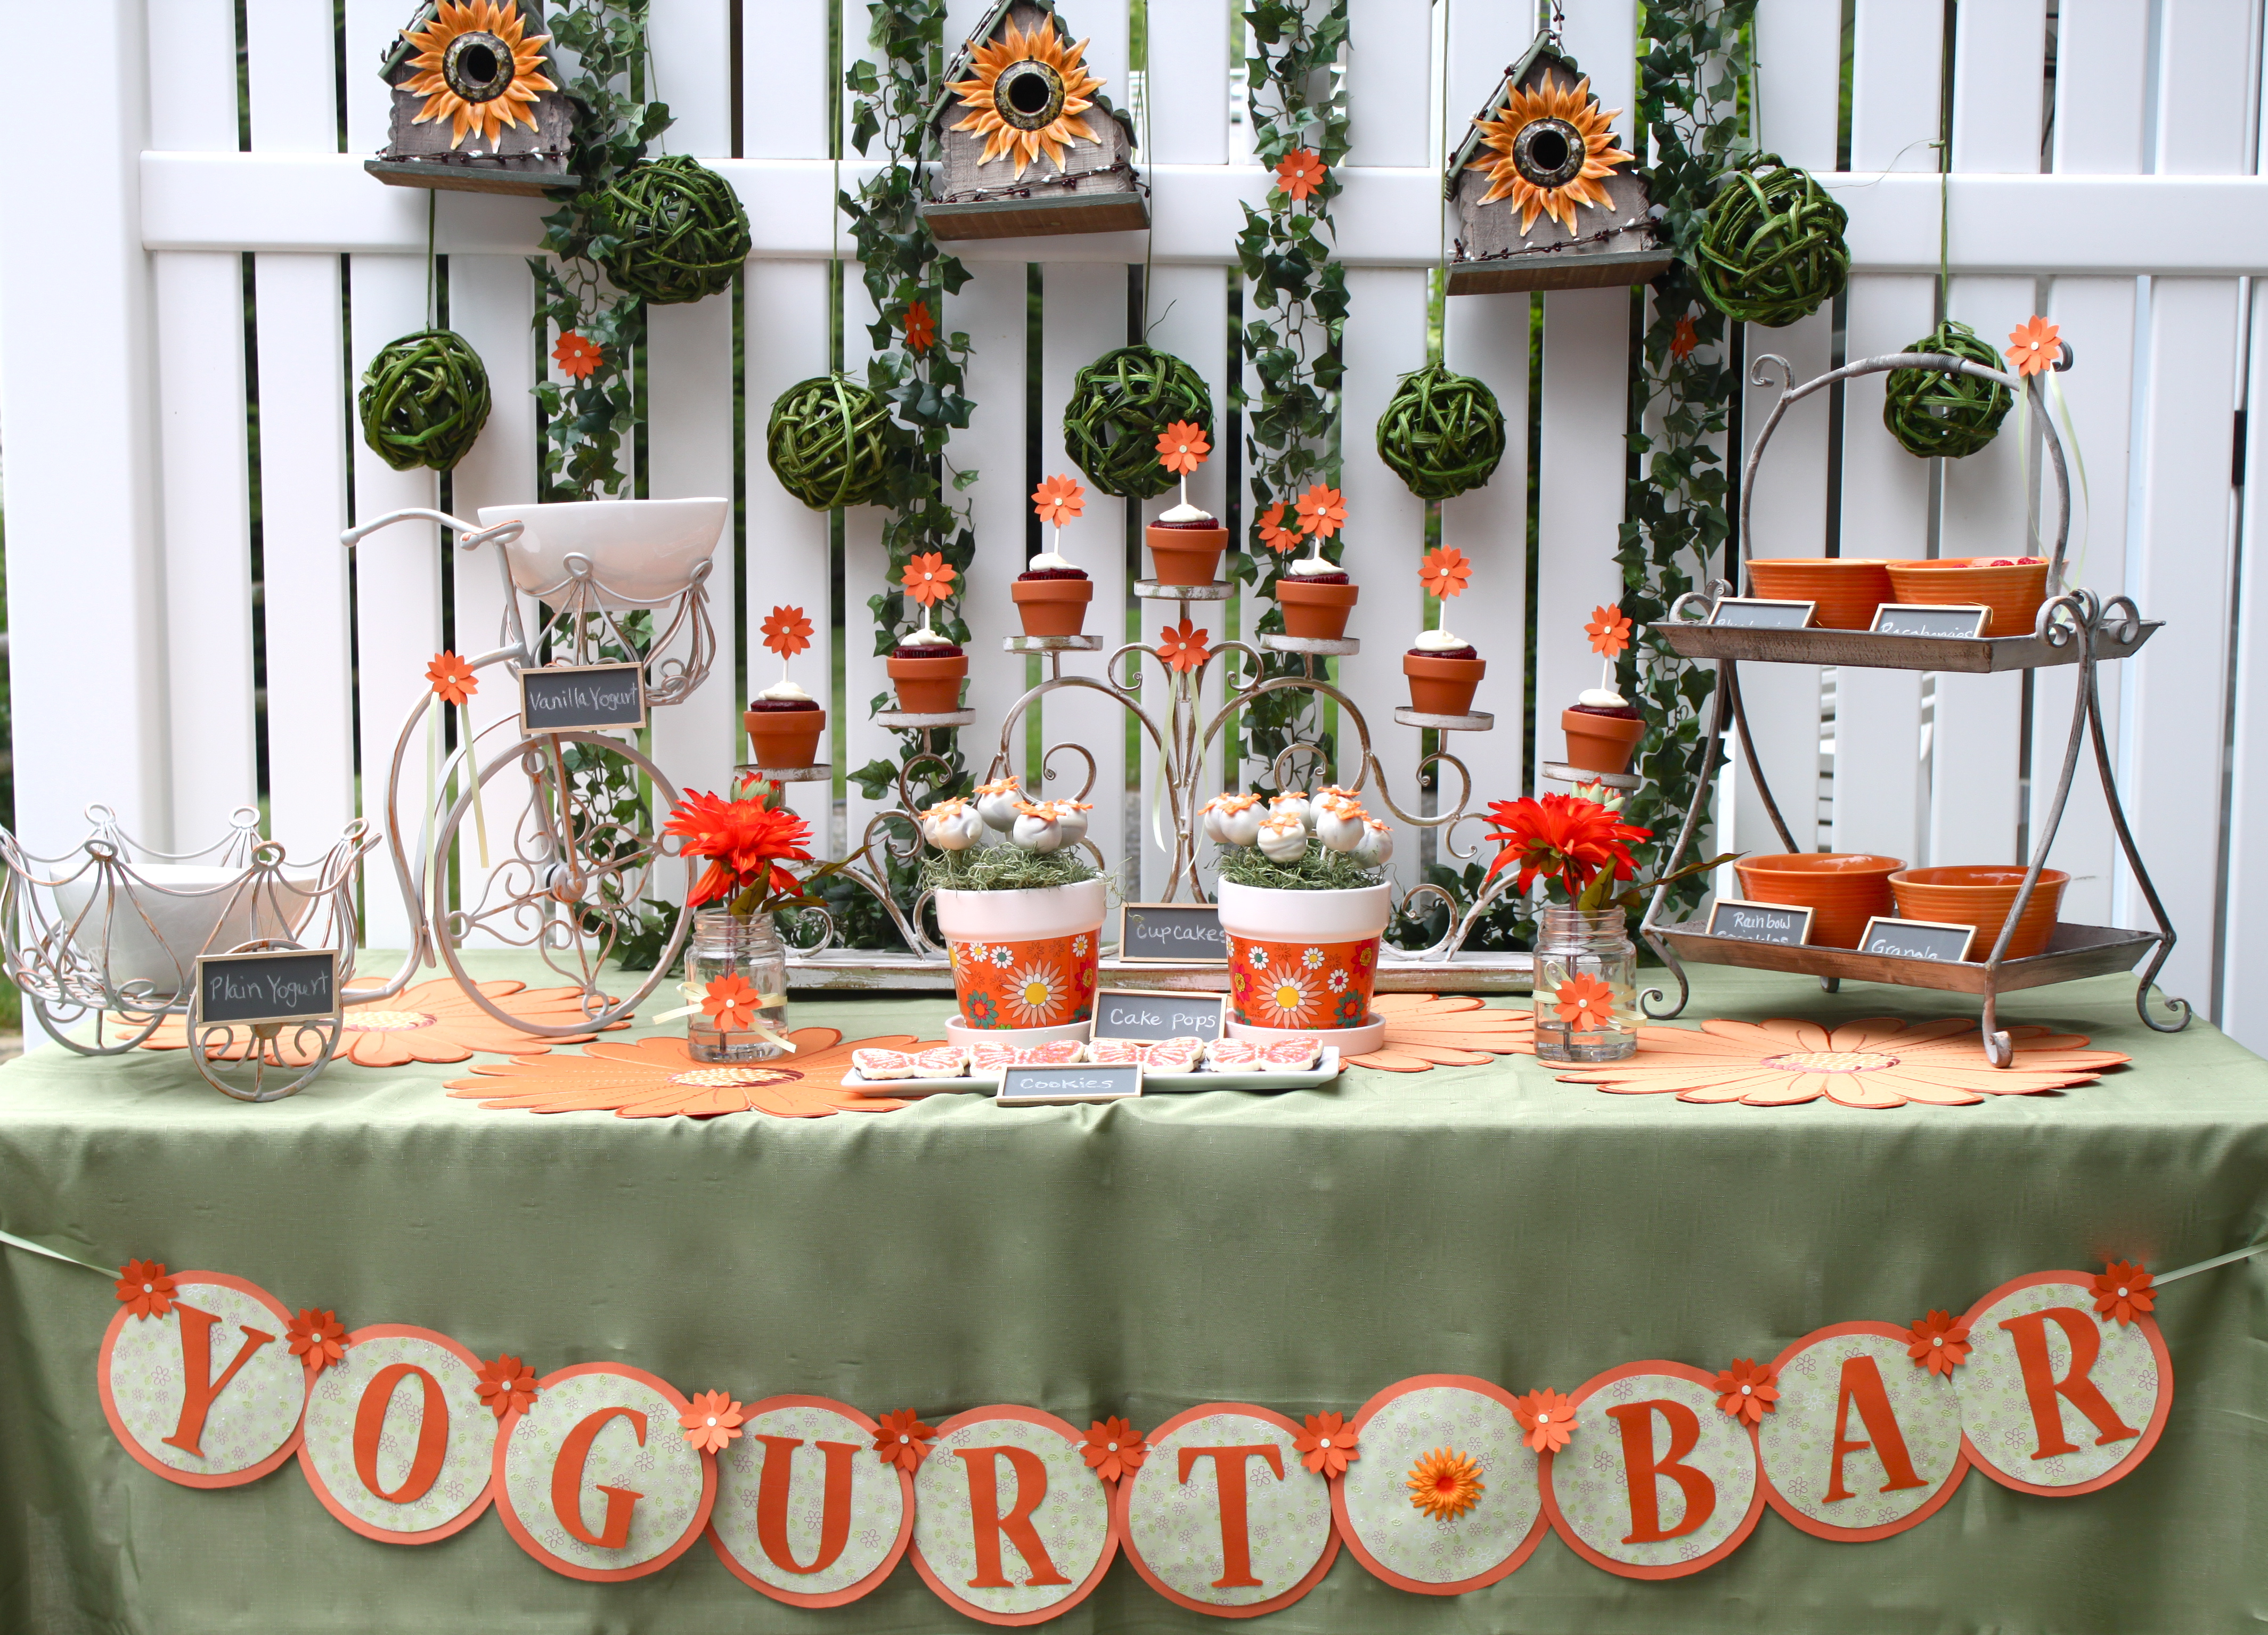 yogurt bar door sign yogurt station cakepops toppings cupcakes tablescape the table